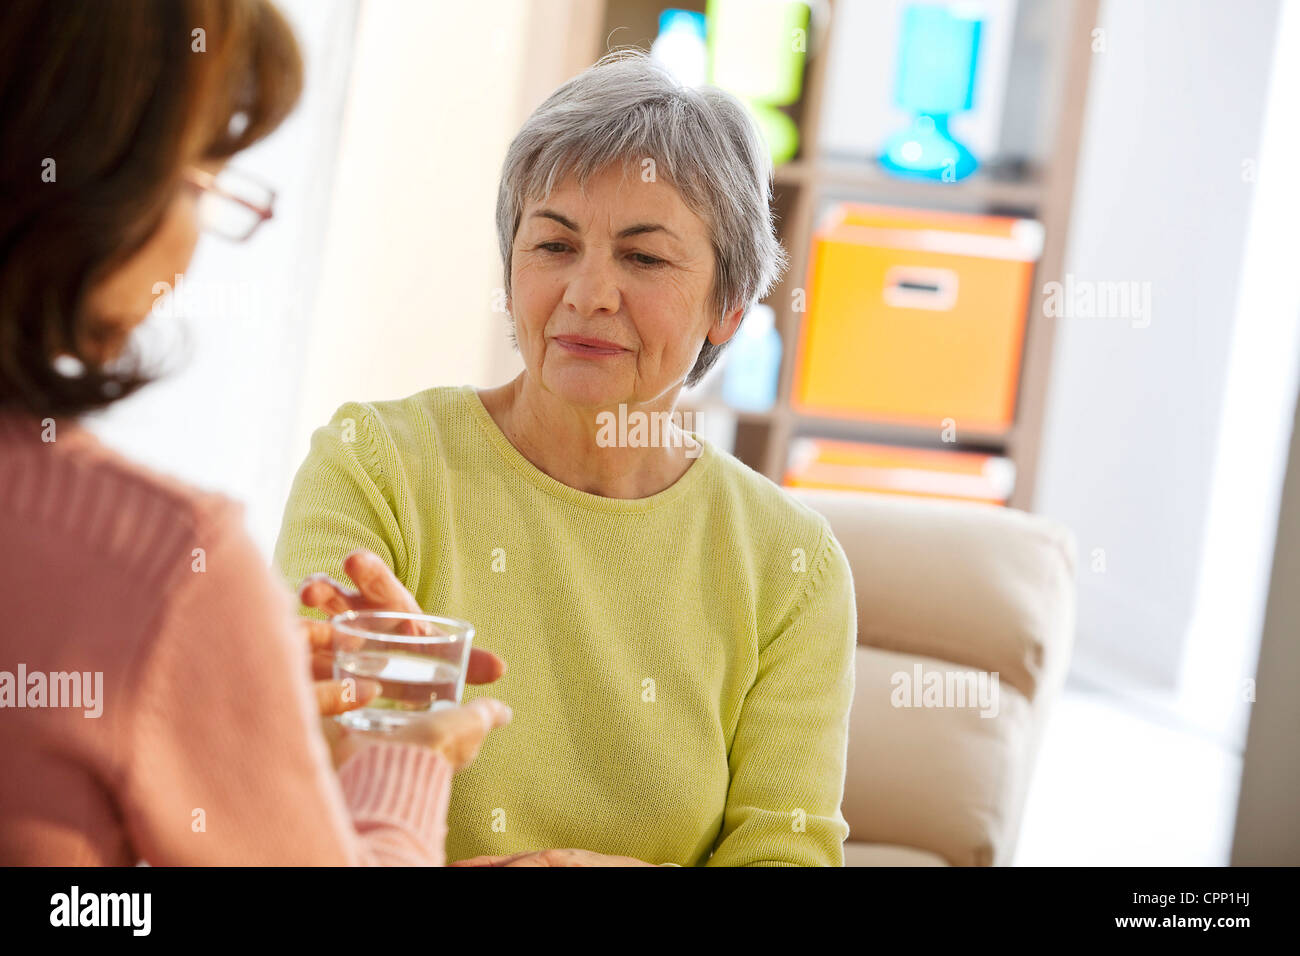 SOCIAL AID FOR ELDERLY PERSON - Stock Image